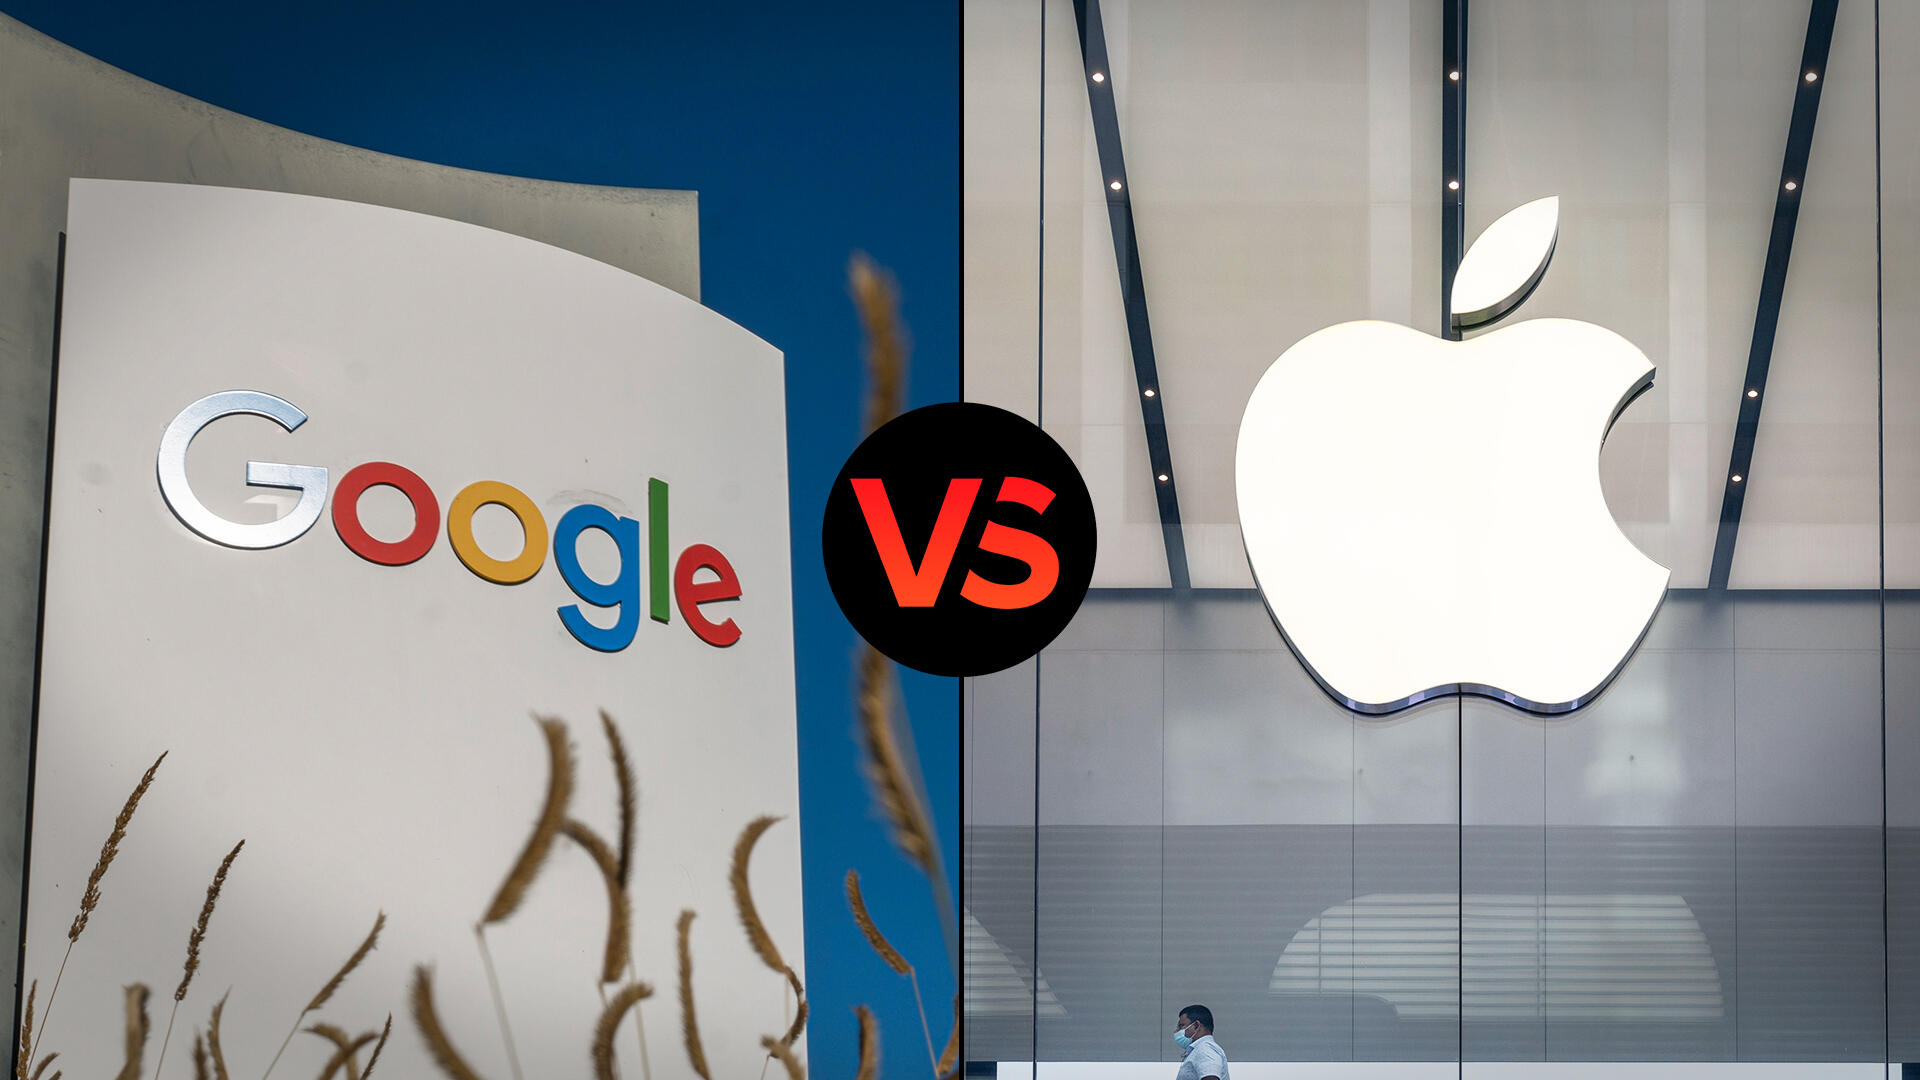 Why Apple doesn't get along with Google